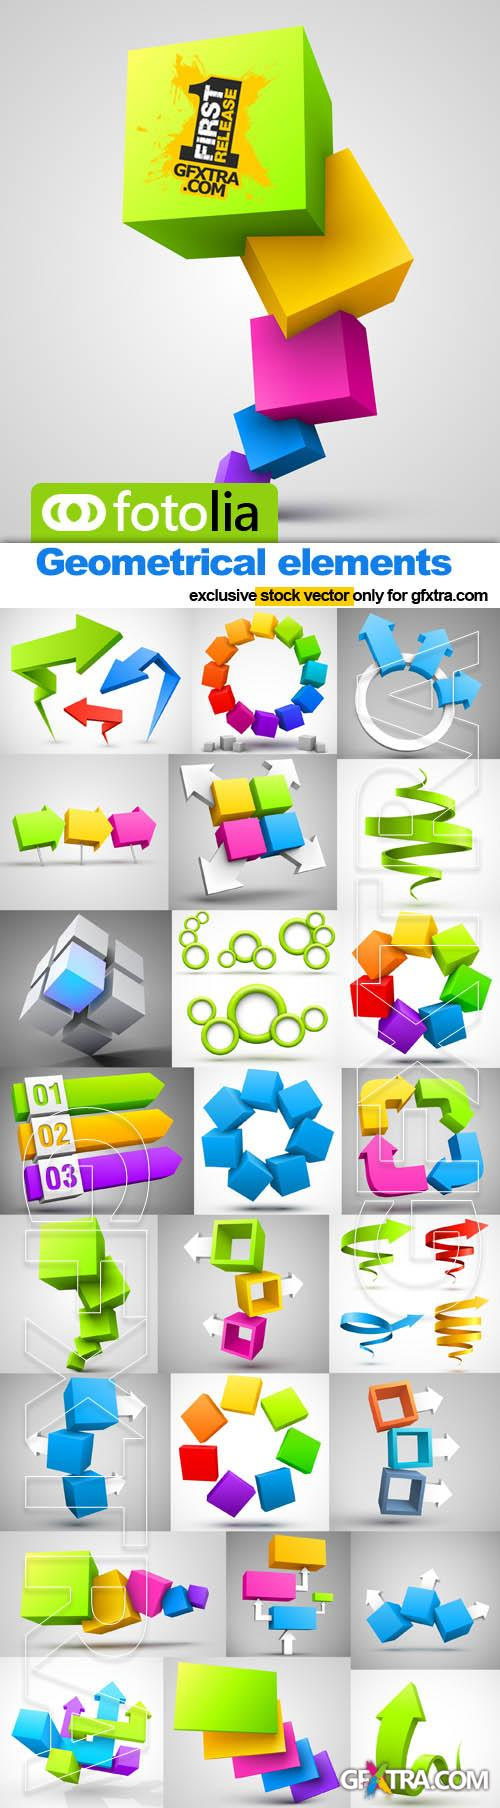 Geometrical elements for design - 25x EPS